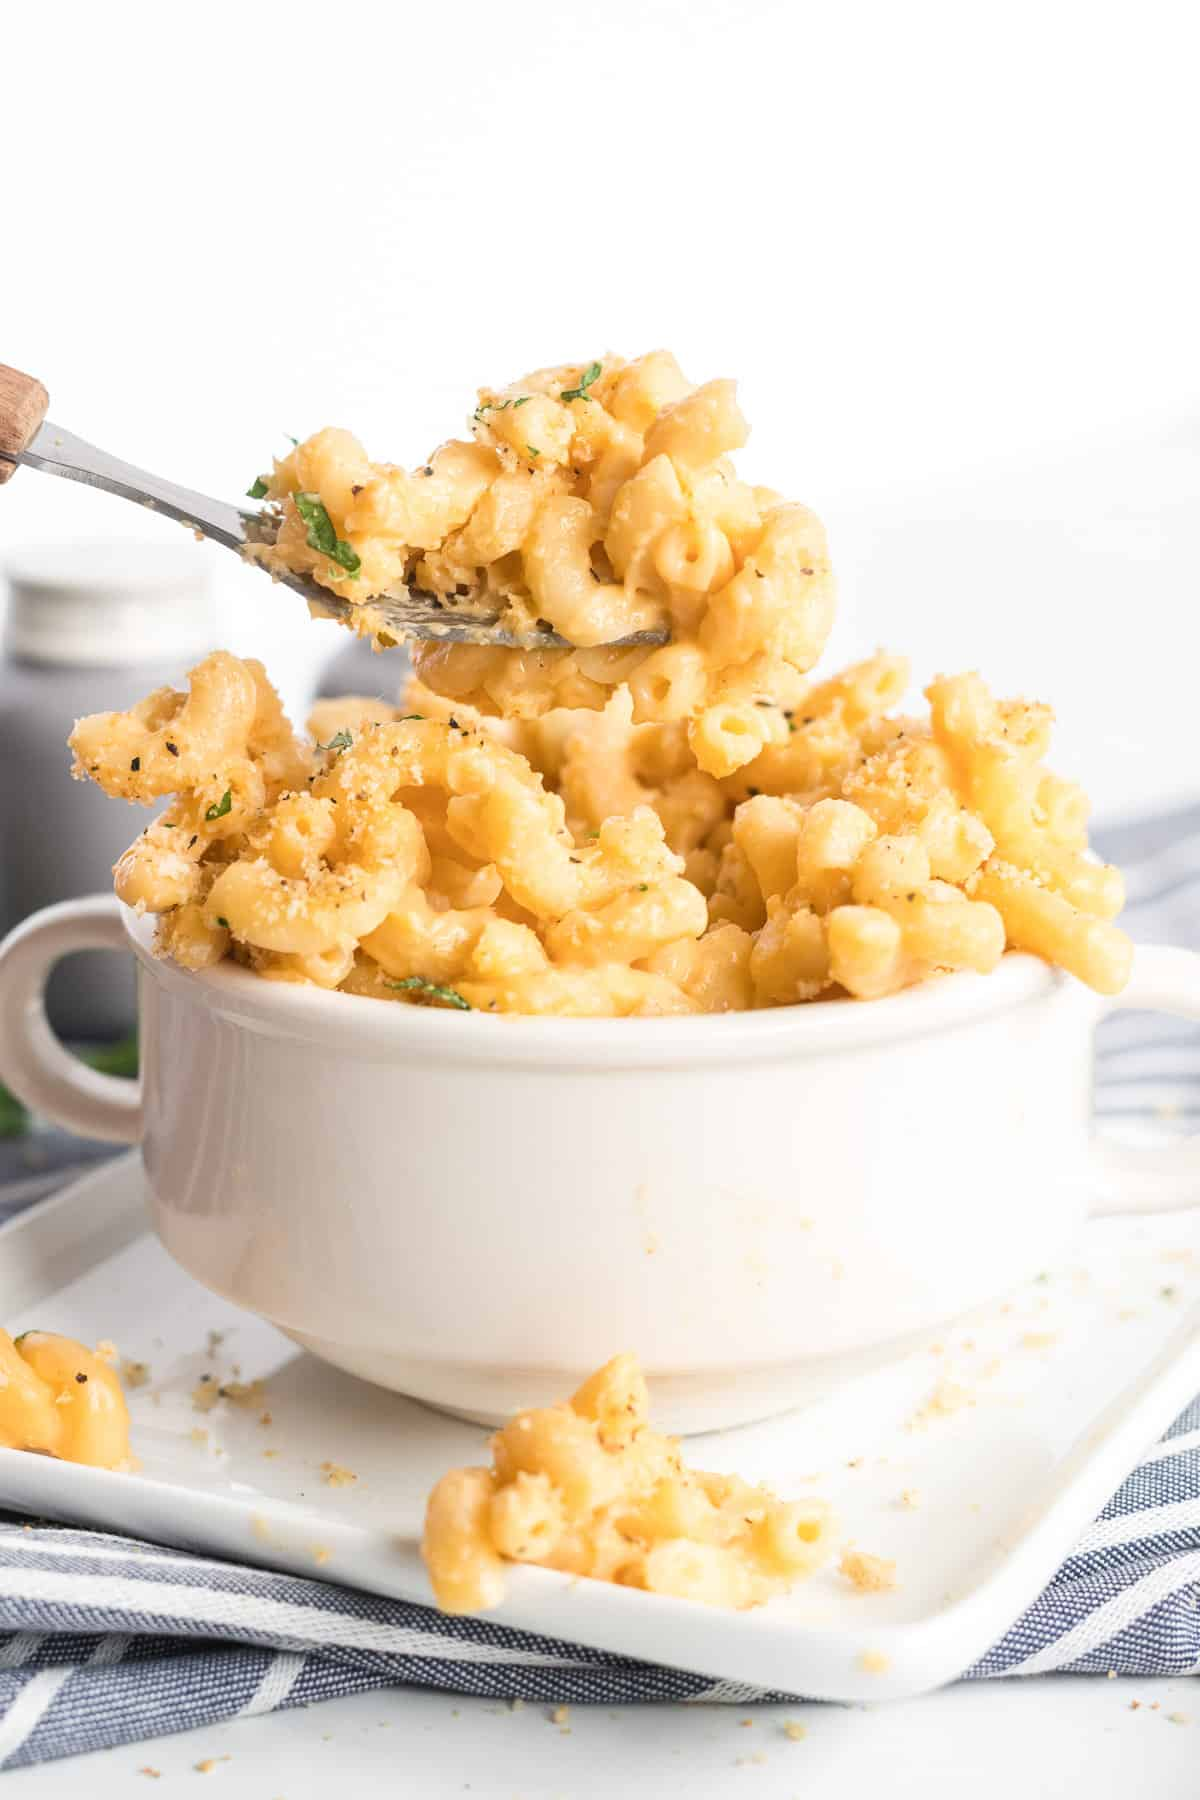 An individual serving of Stovetop Macaroni and Cheese being scooped up with a spoon from a small white bowl.